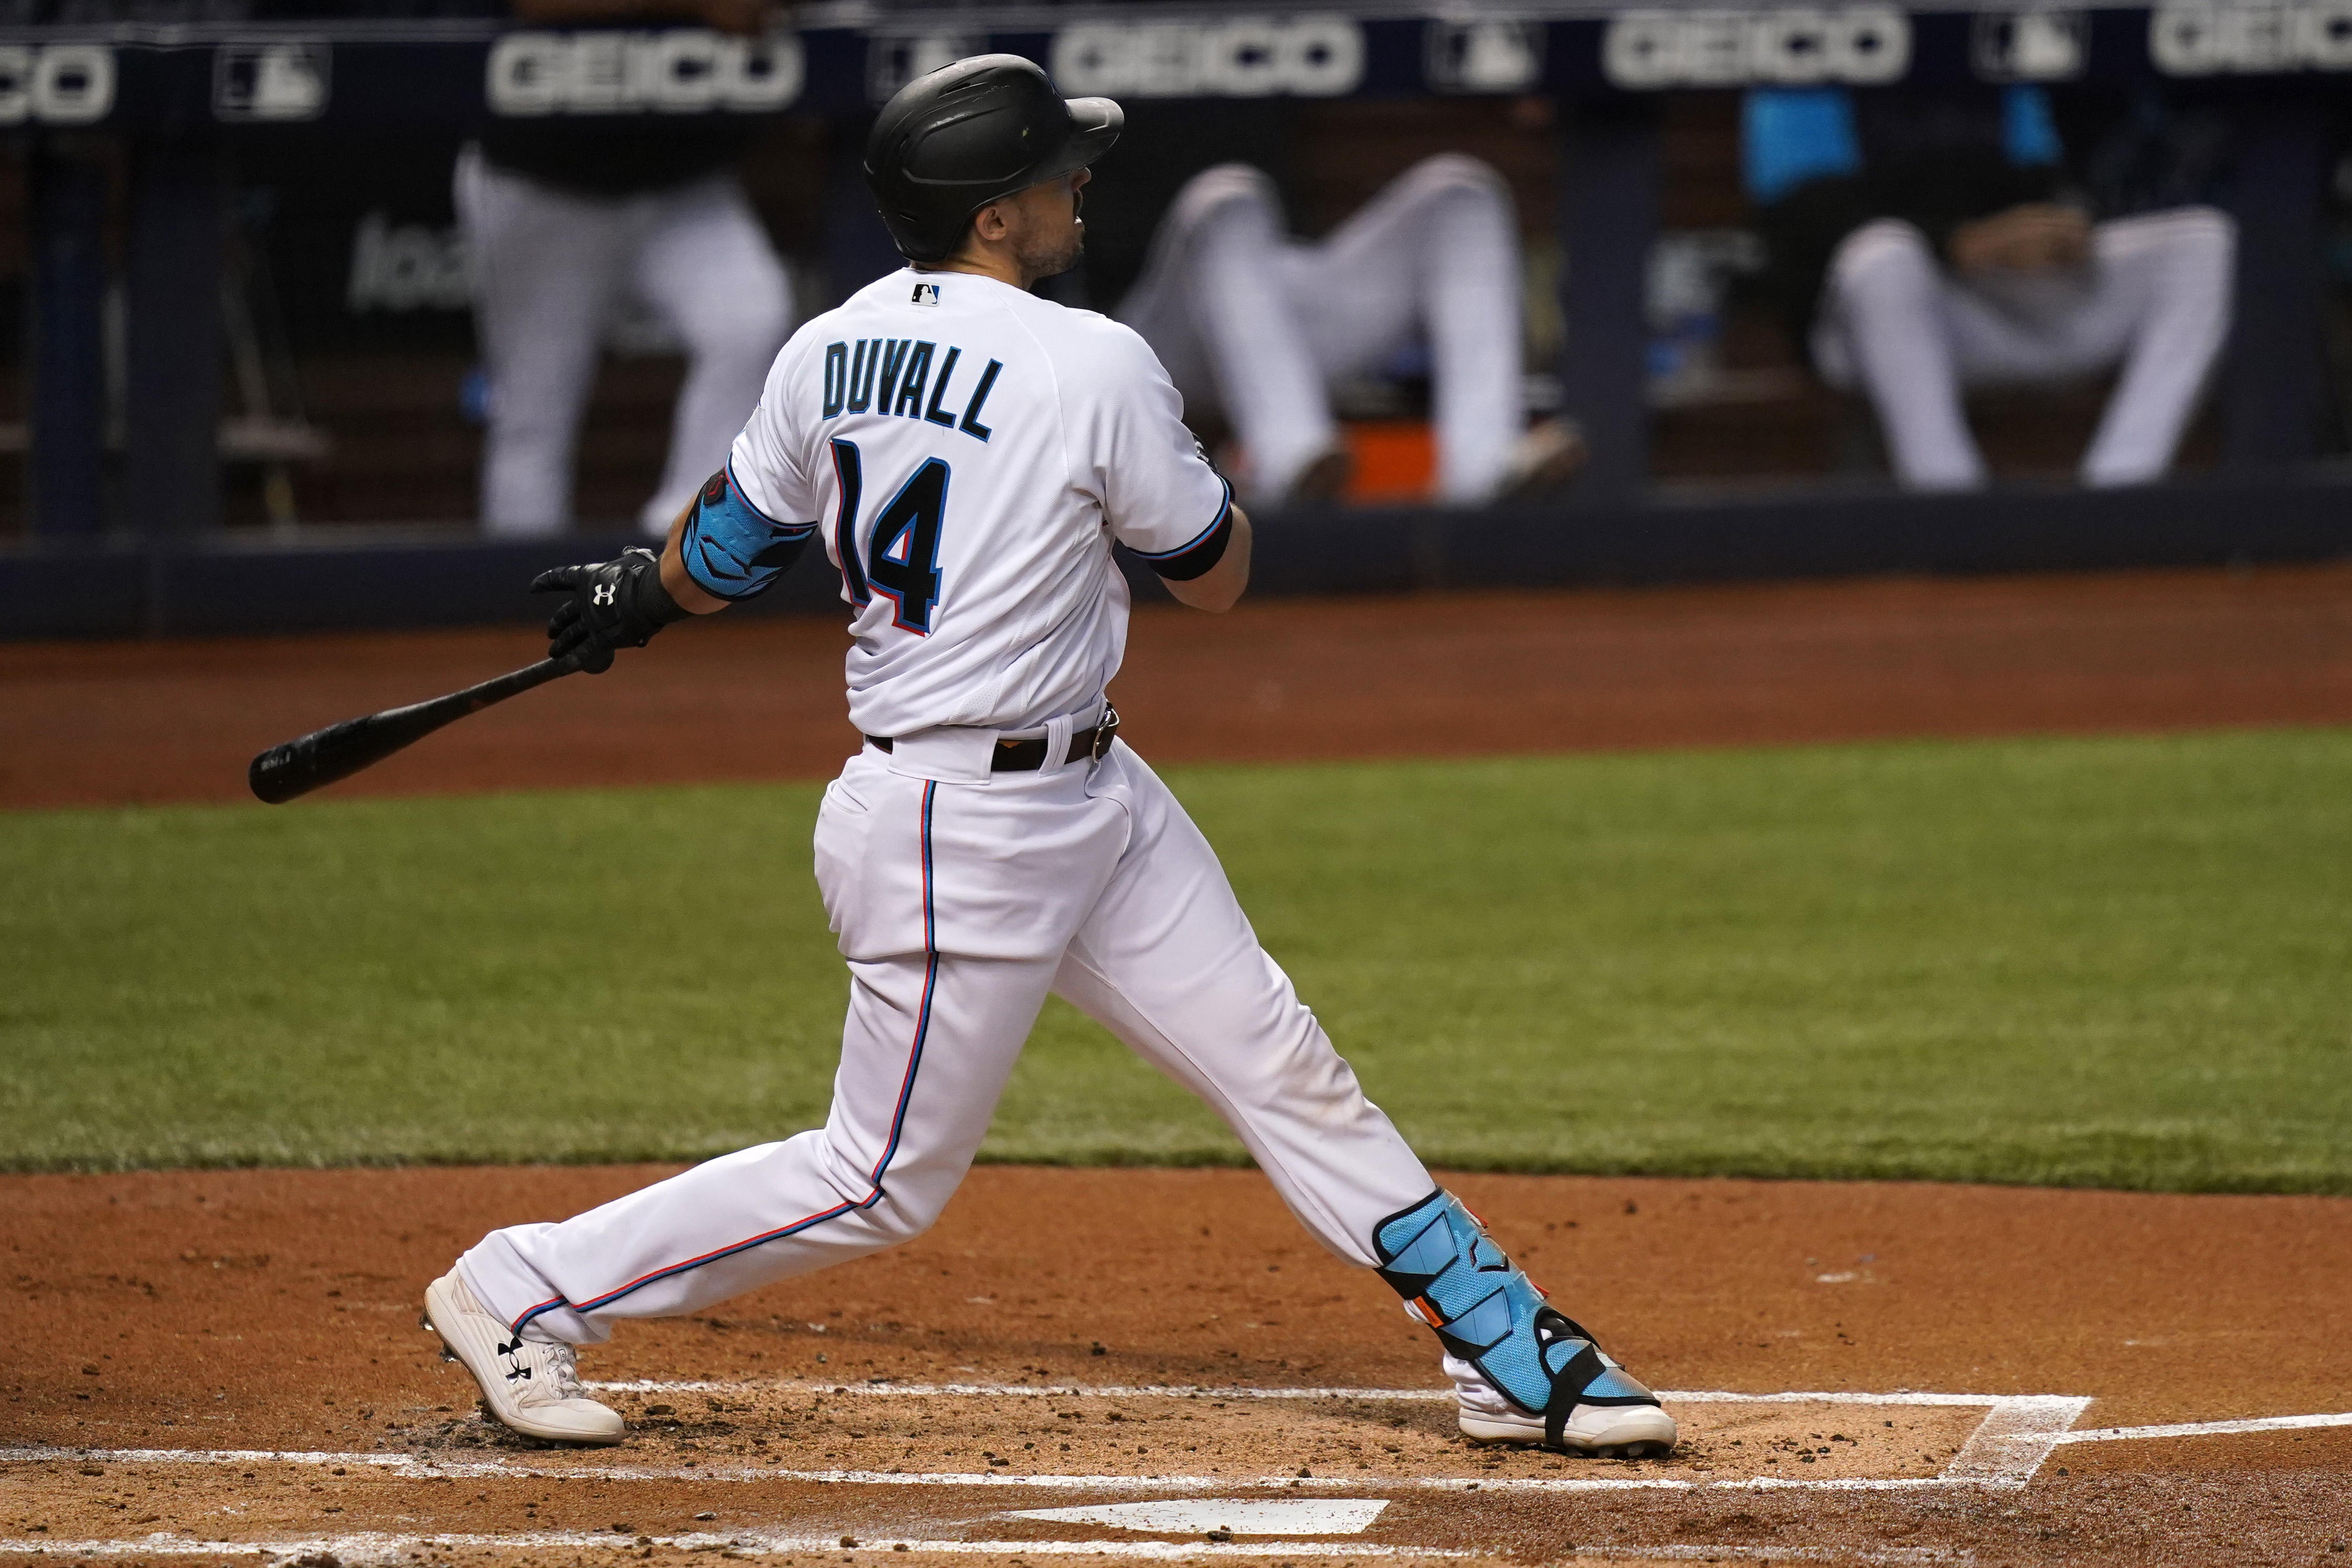 Jun 10, 2021; Miami, Florida, USA; Miami Marlins right fielder Adam Duvall (14) connects for a two-run homerun in the 2nd inning against the Colorado Rockies at loanDepot park. Mandatory Credit: Jasen Vinlove-USA TODAY Sports